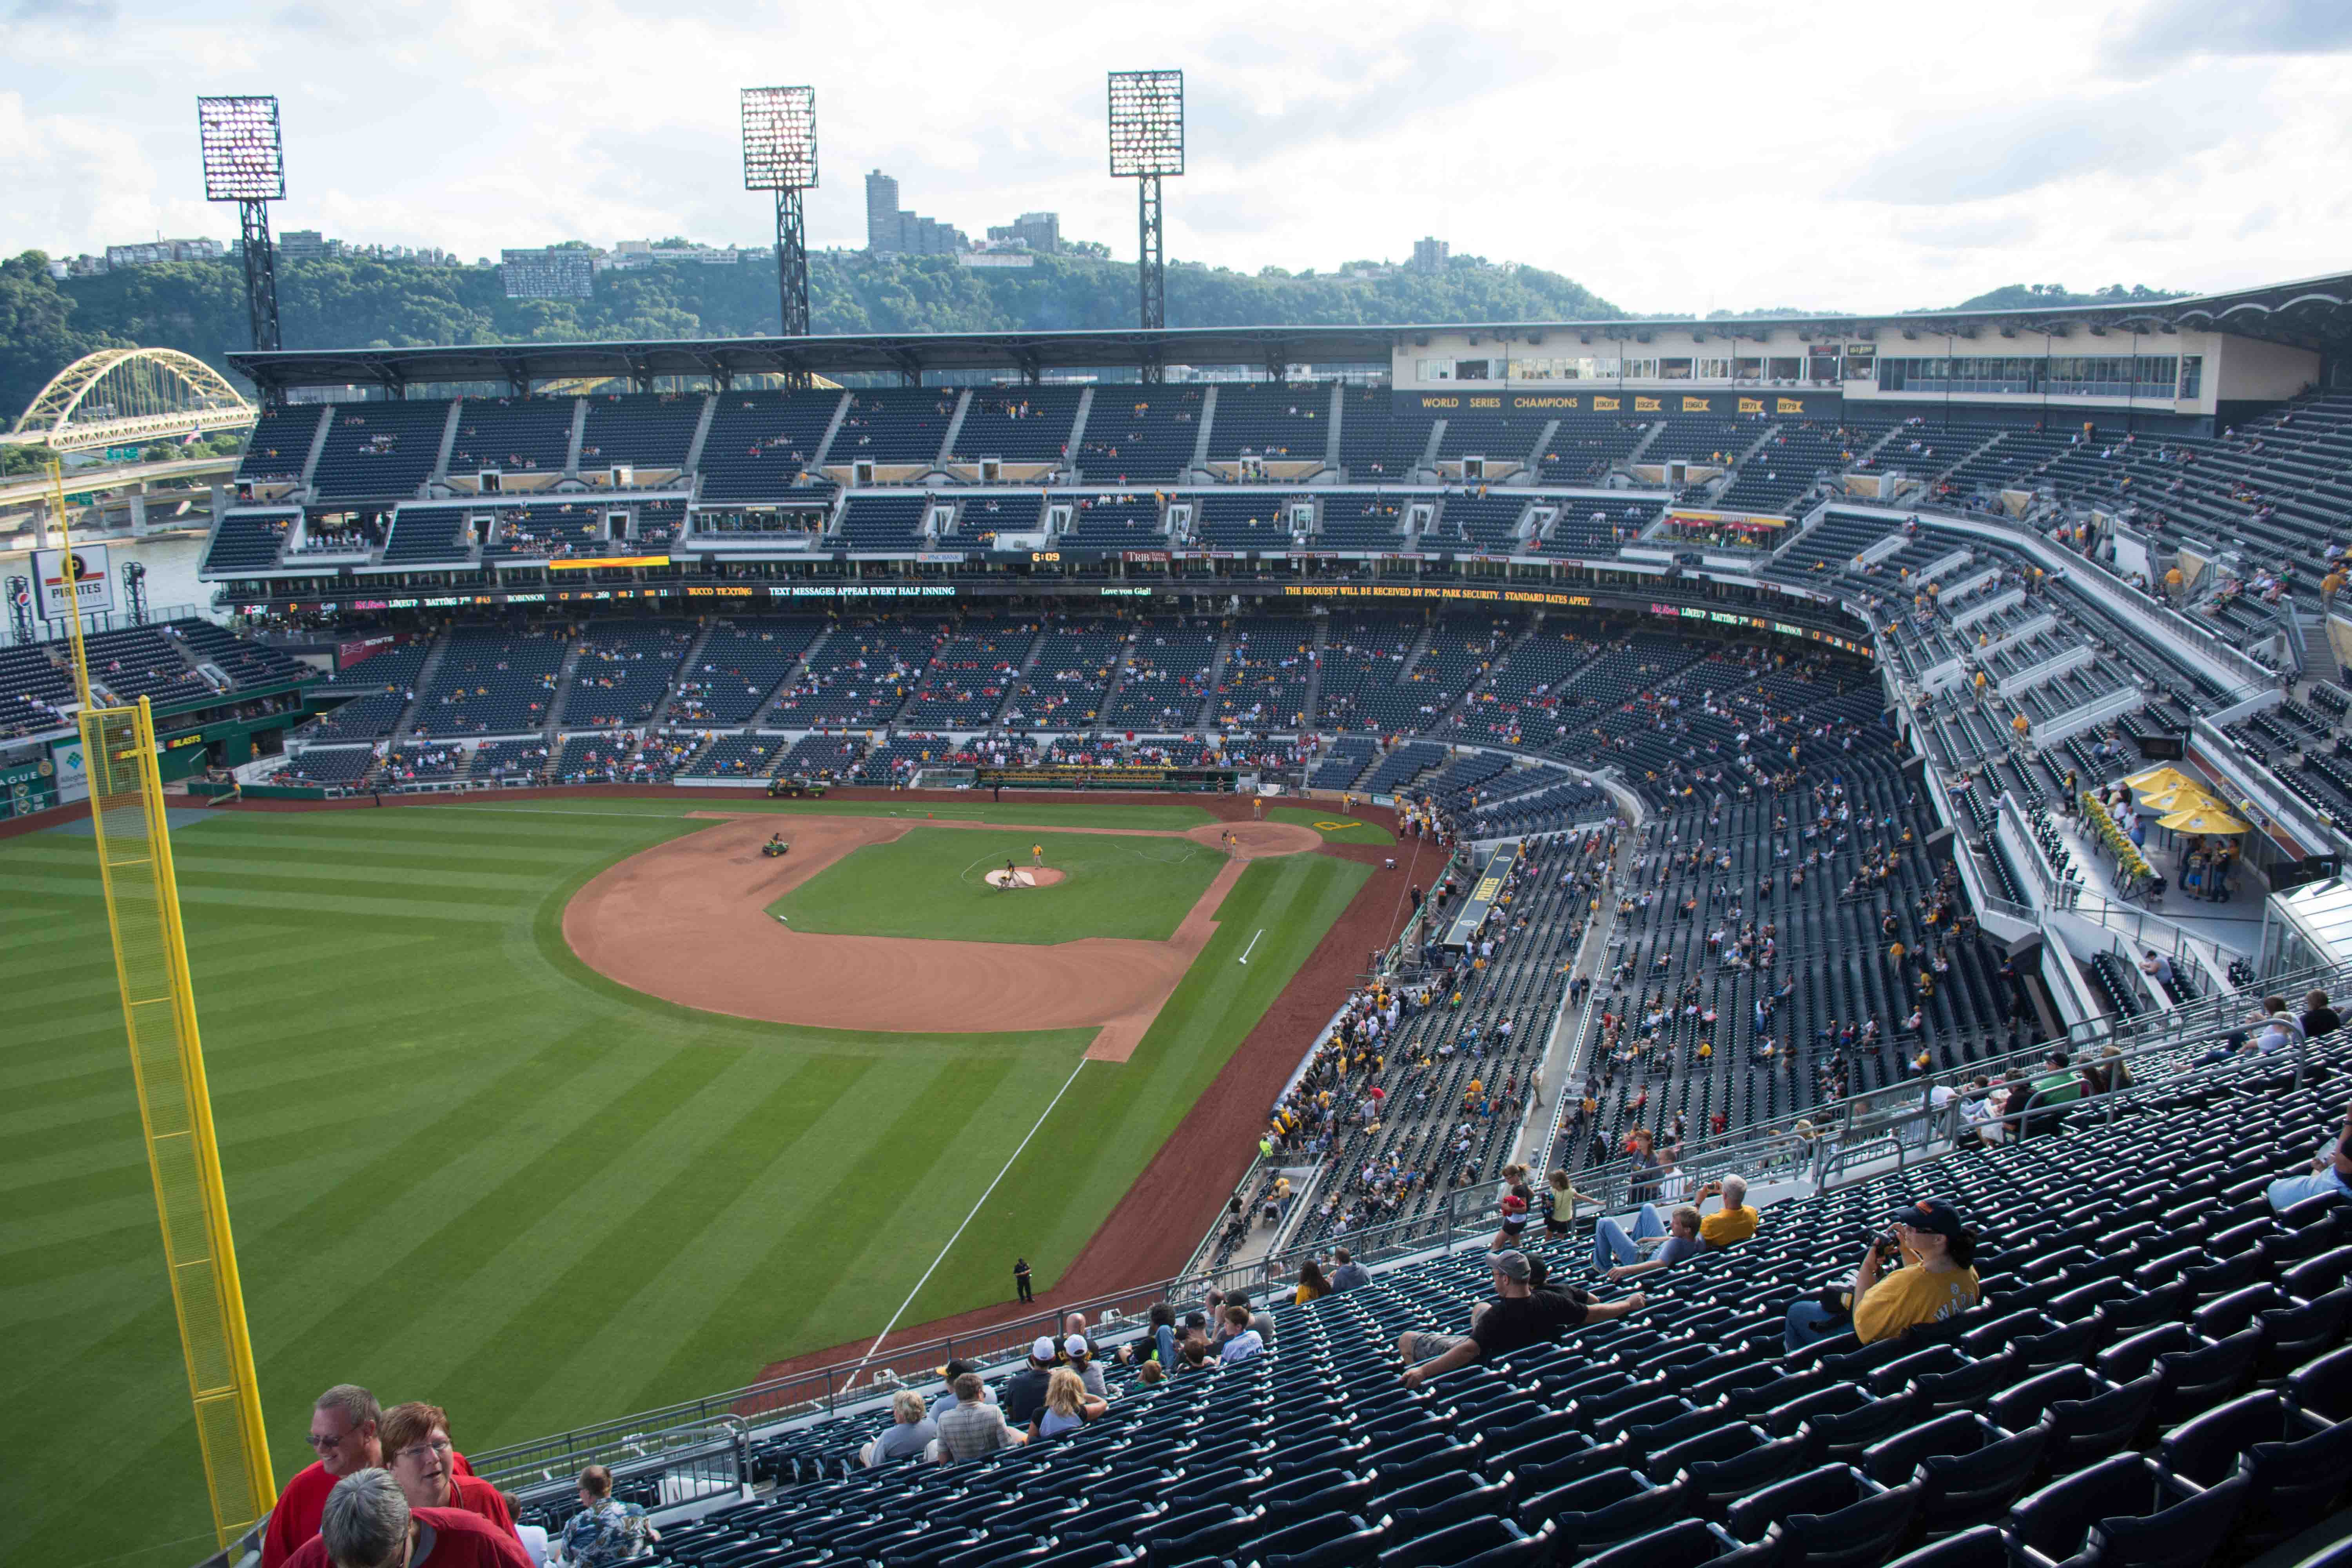 Best Seats For Pittsburgh Pirates At PNC Park